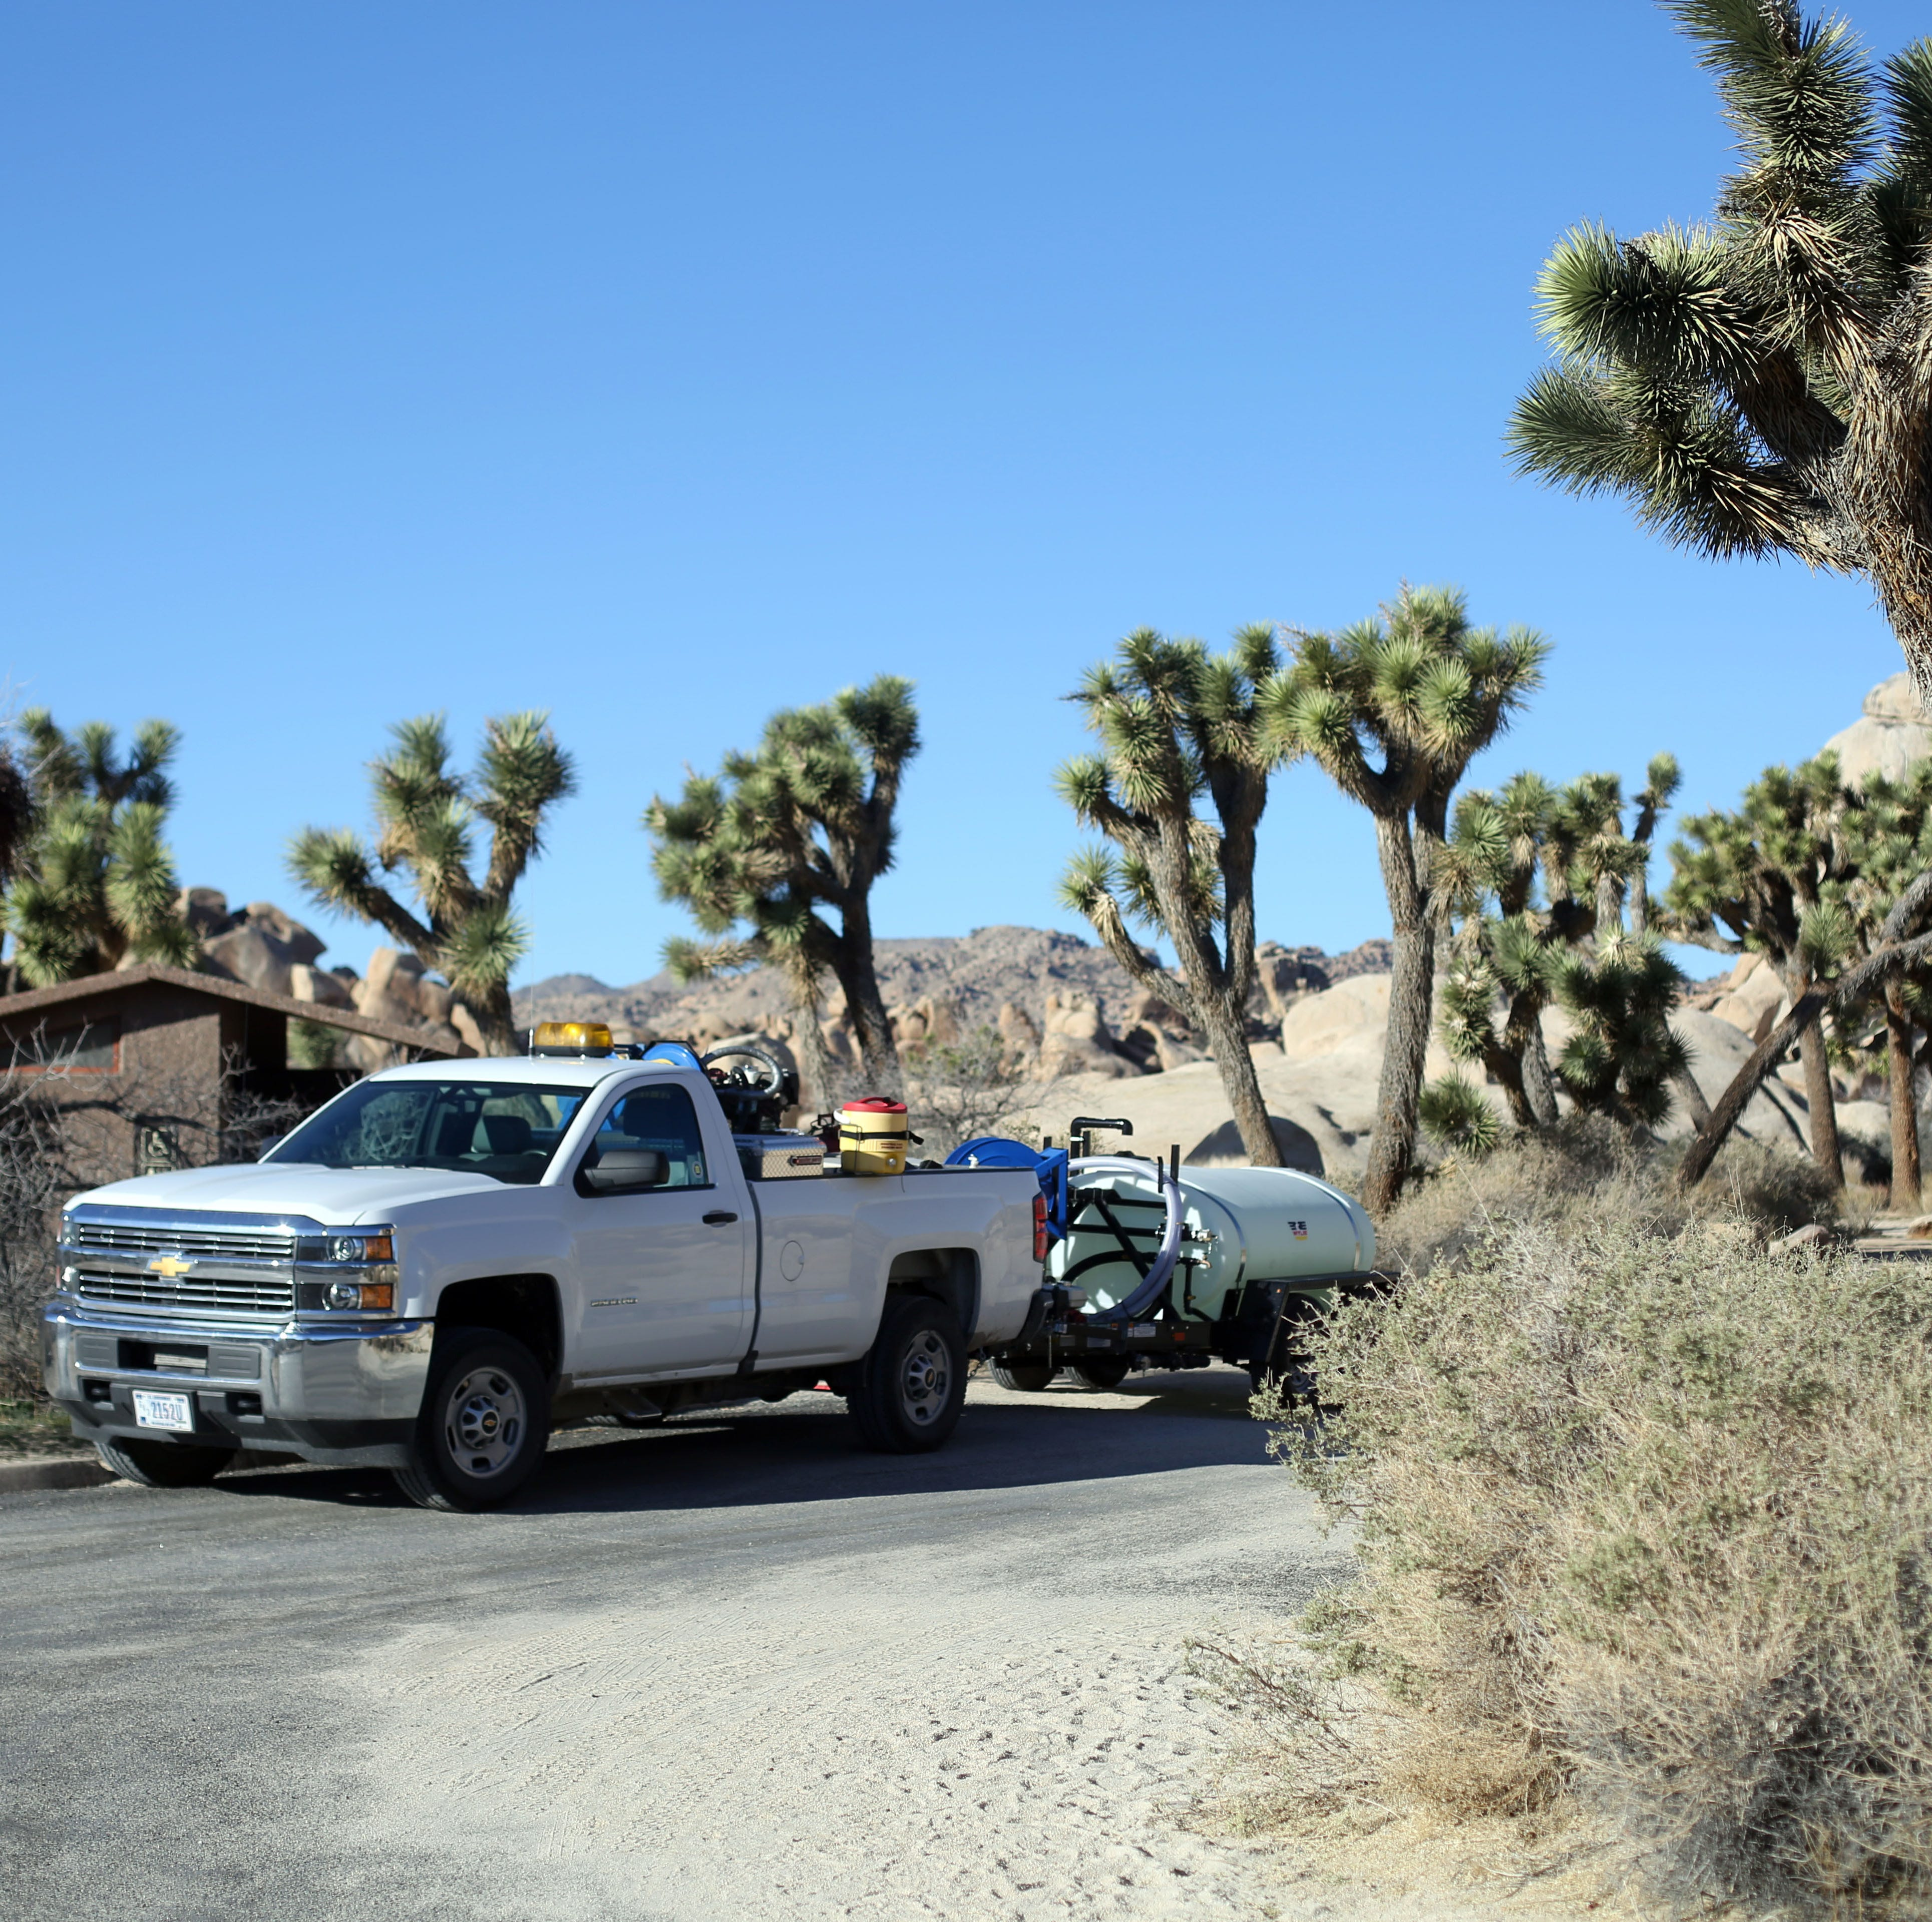 Government shutdown no excuse for outlandish Joshua Tree National Park vandalism